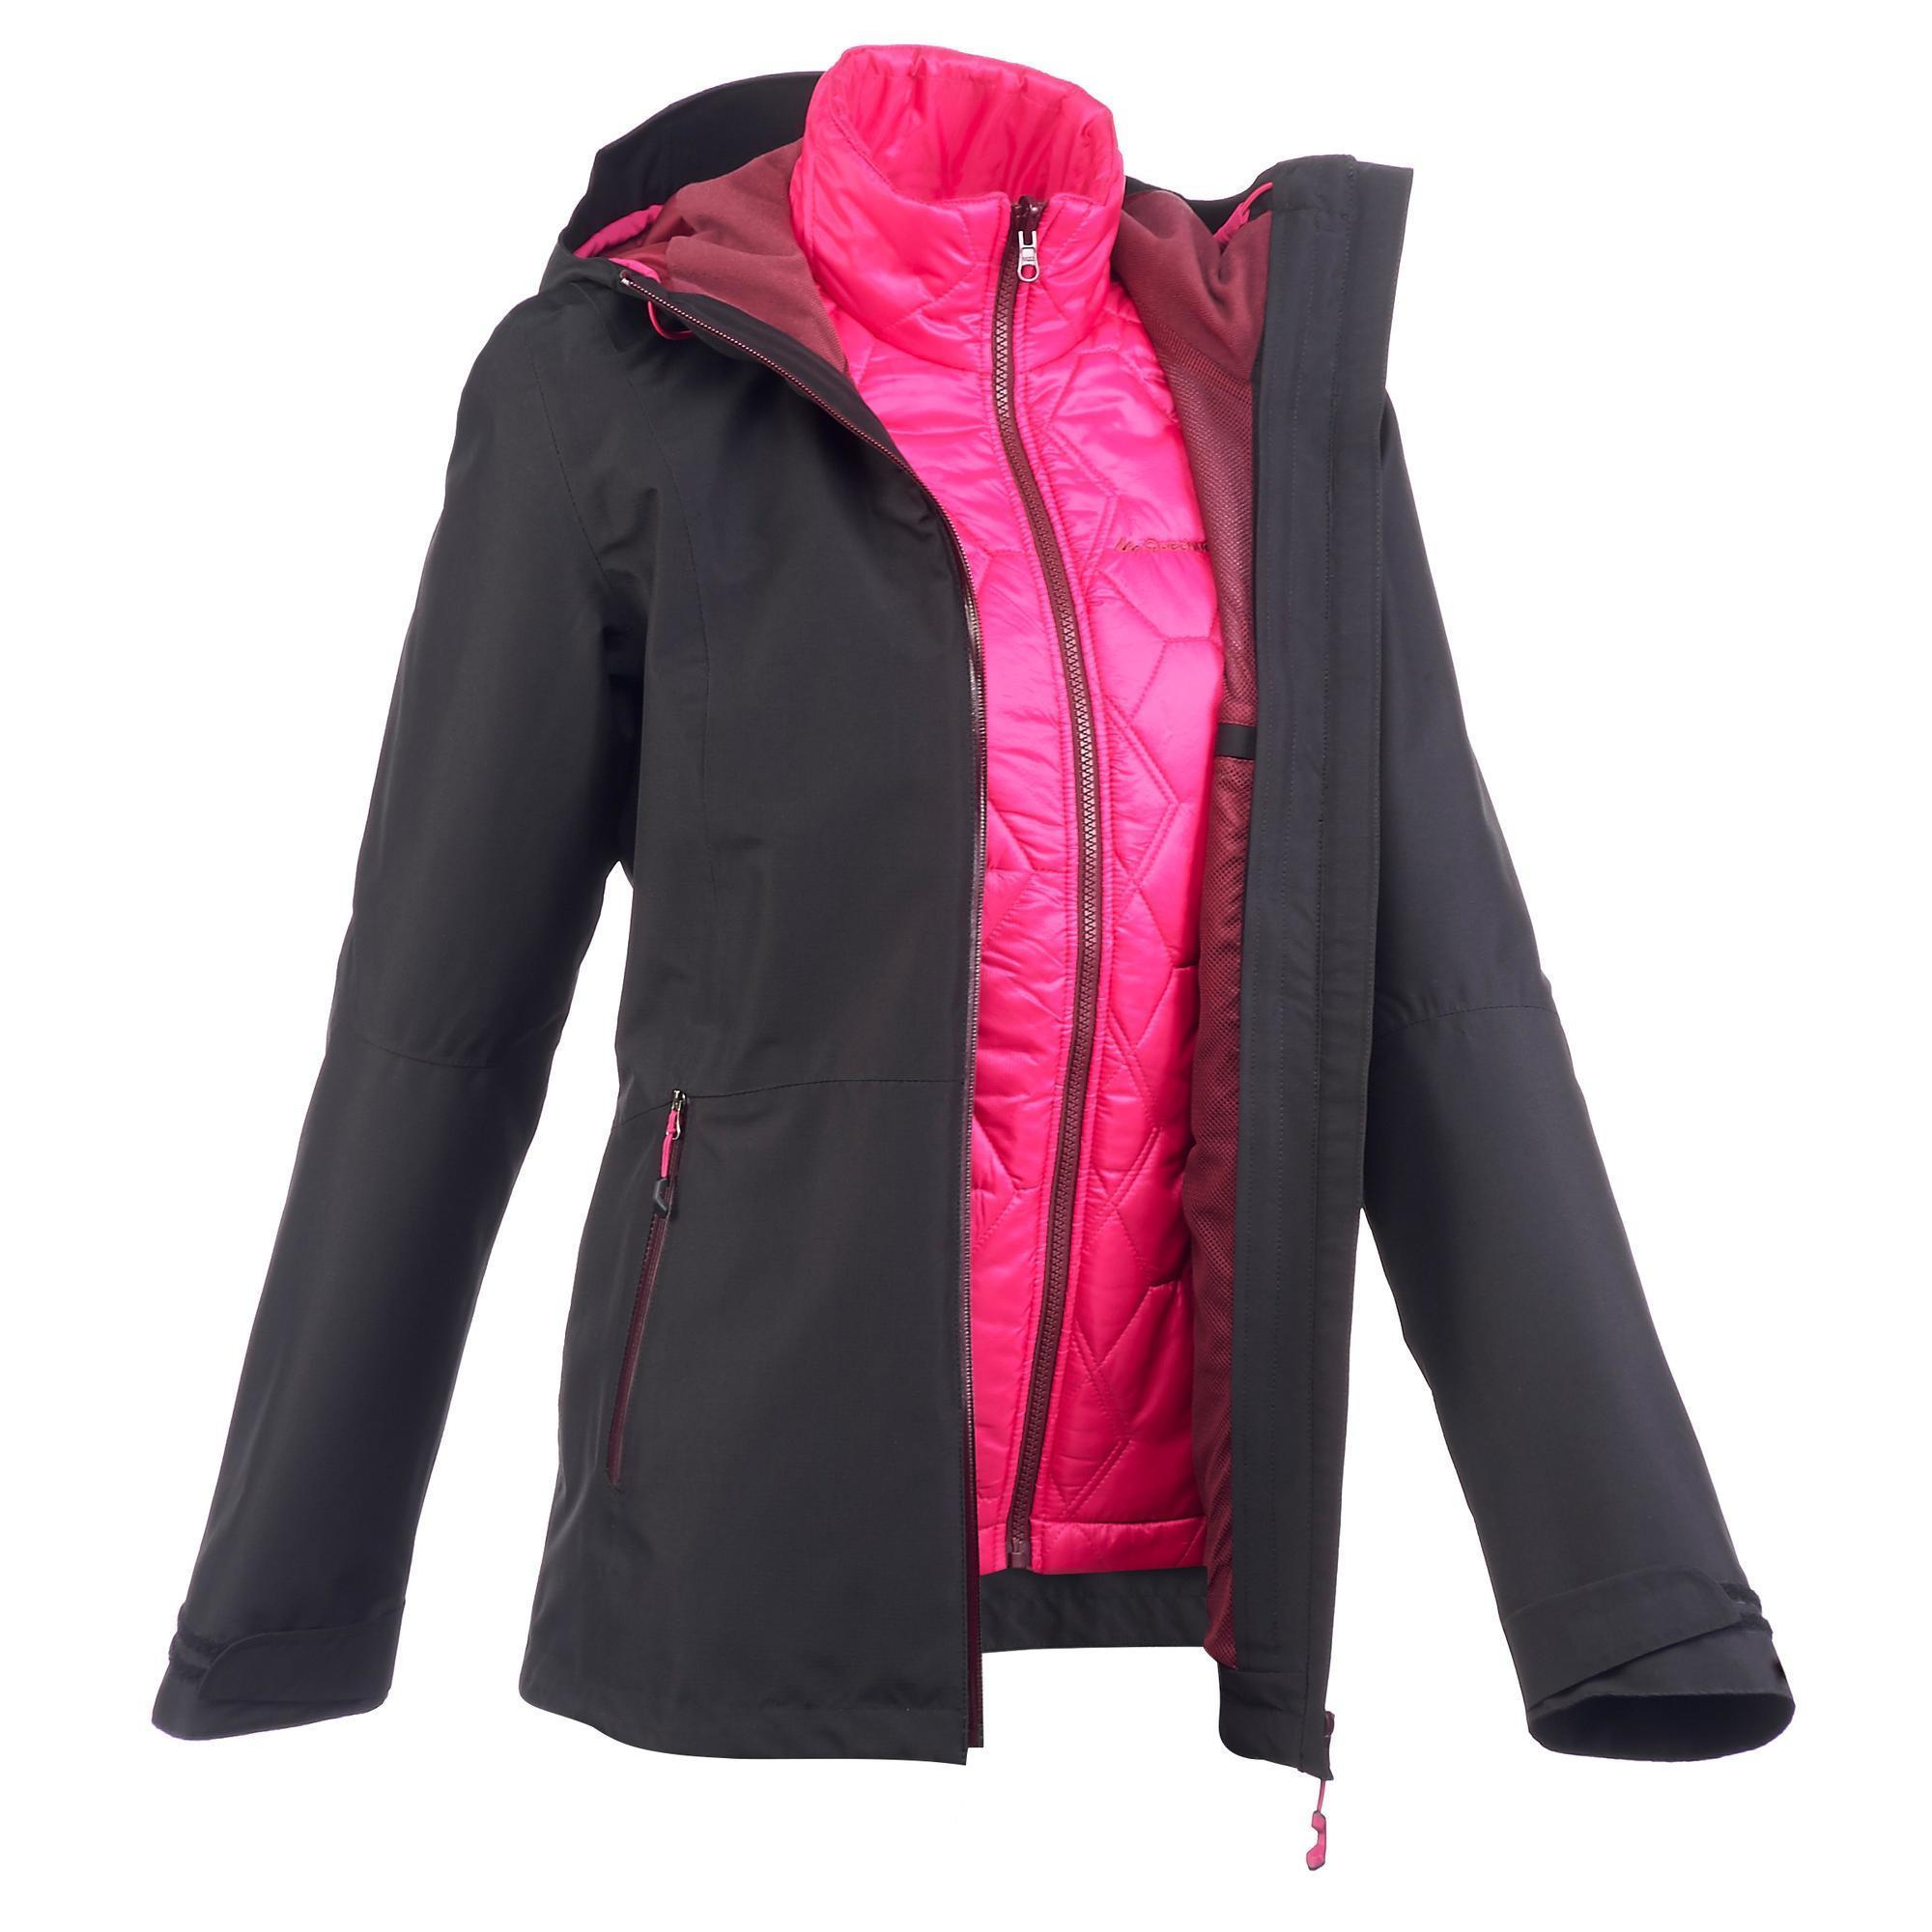 VESTE RAINWARM 500 3EN1 F NOR